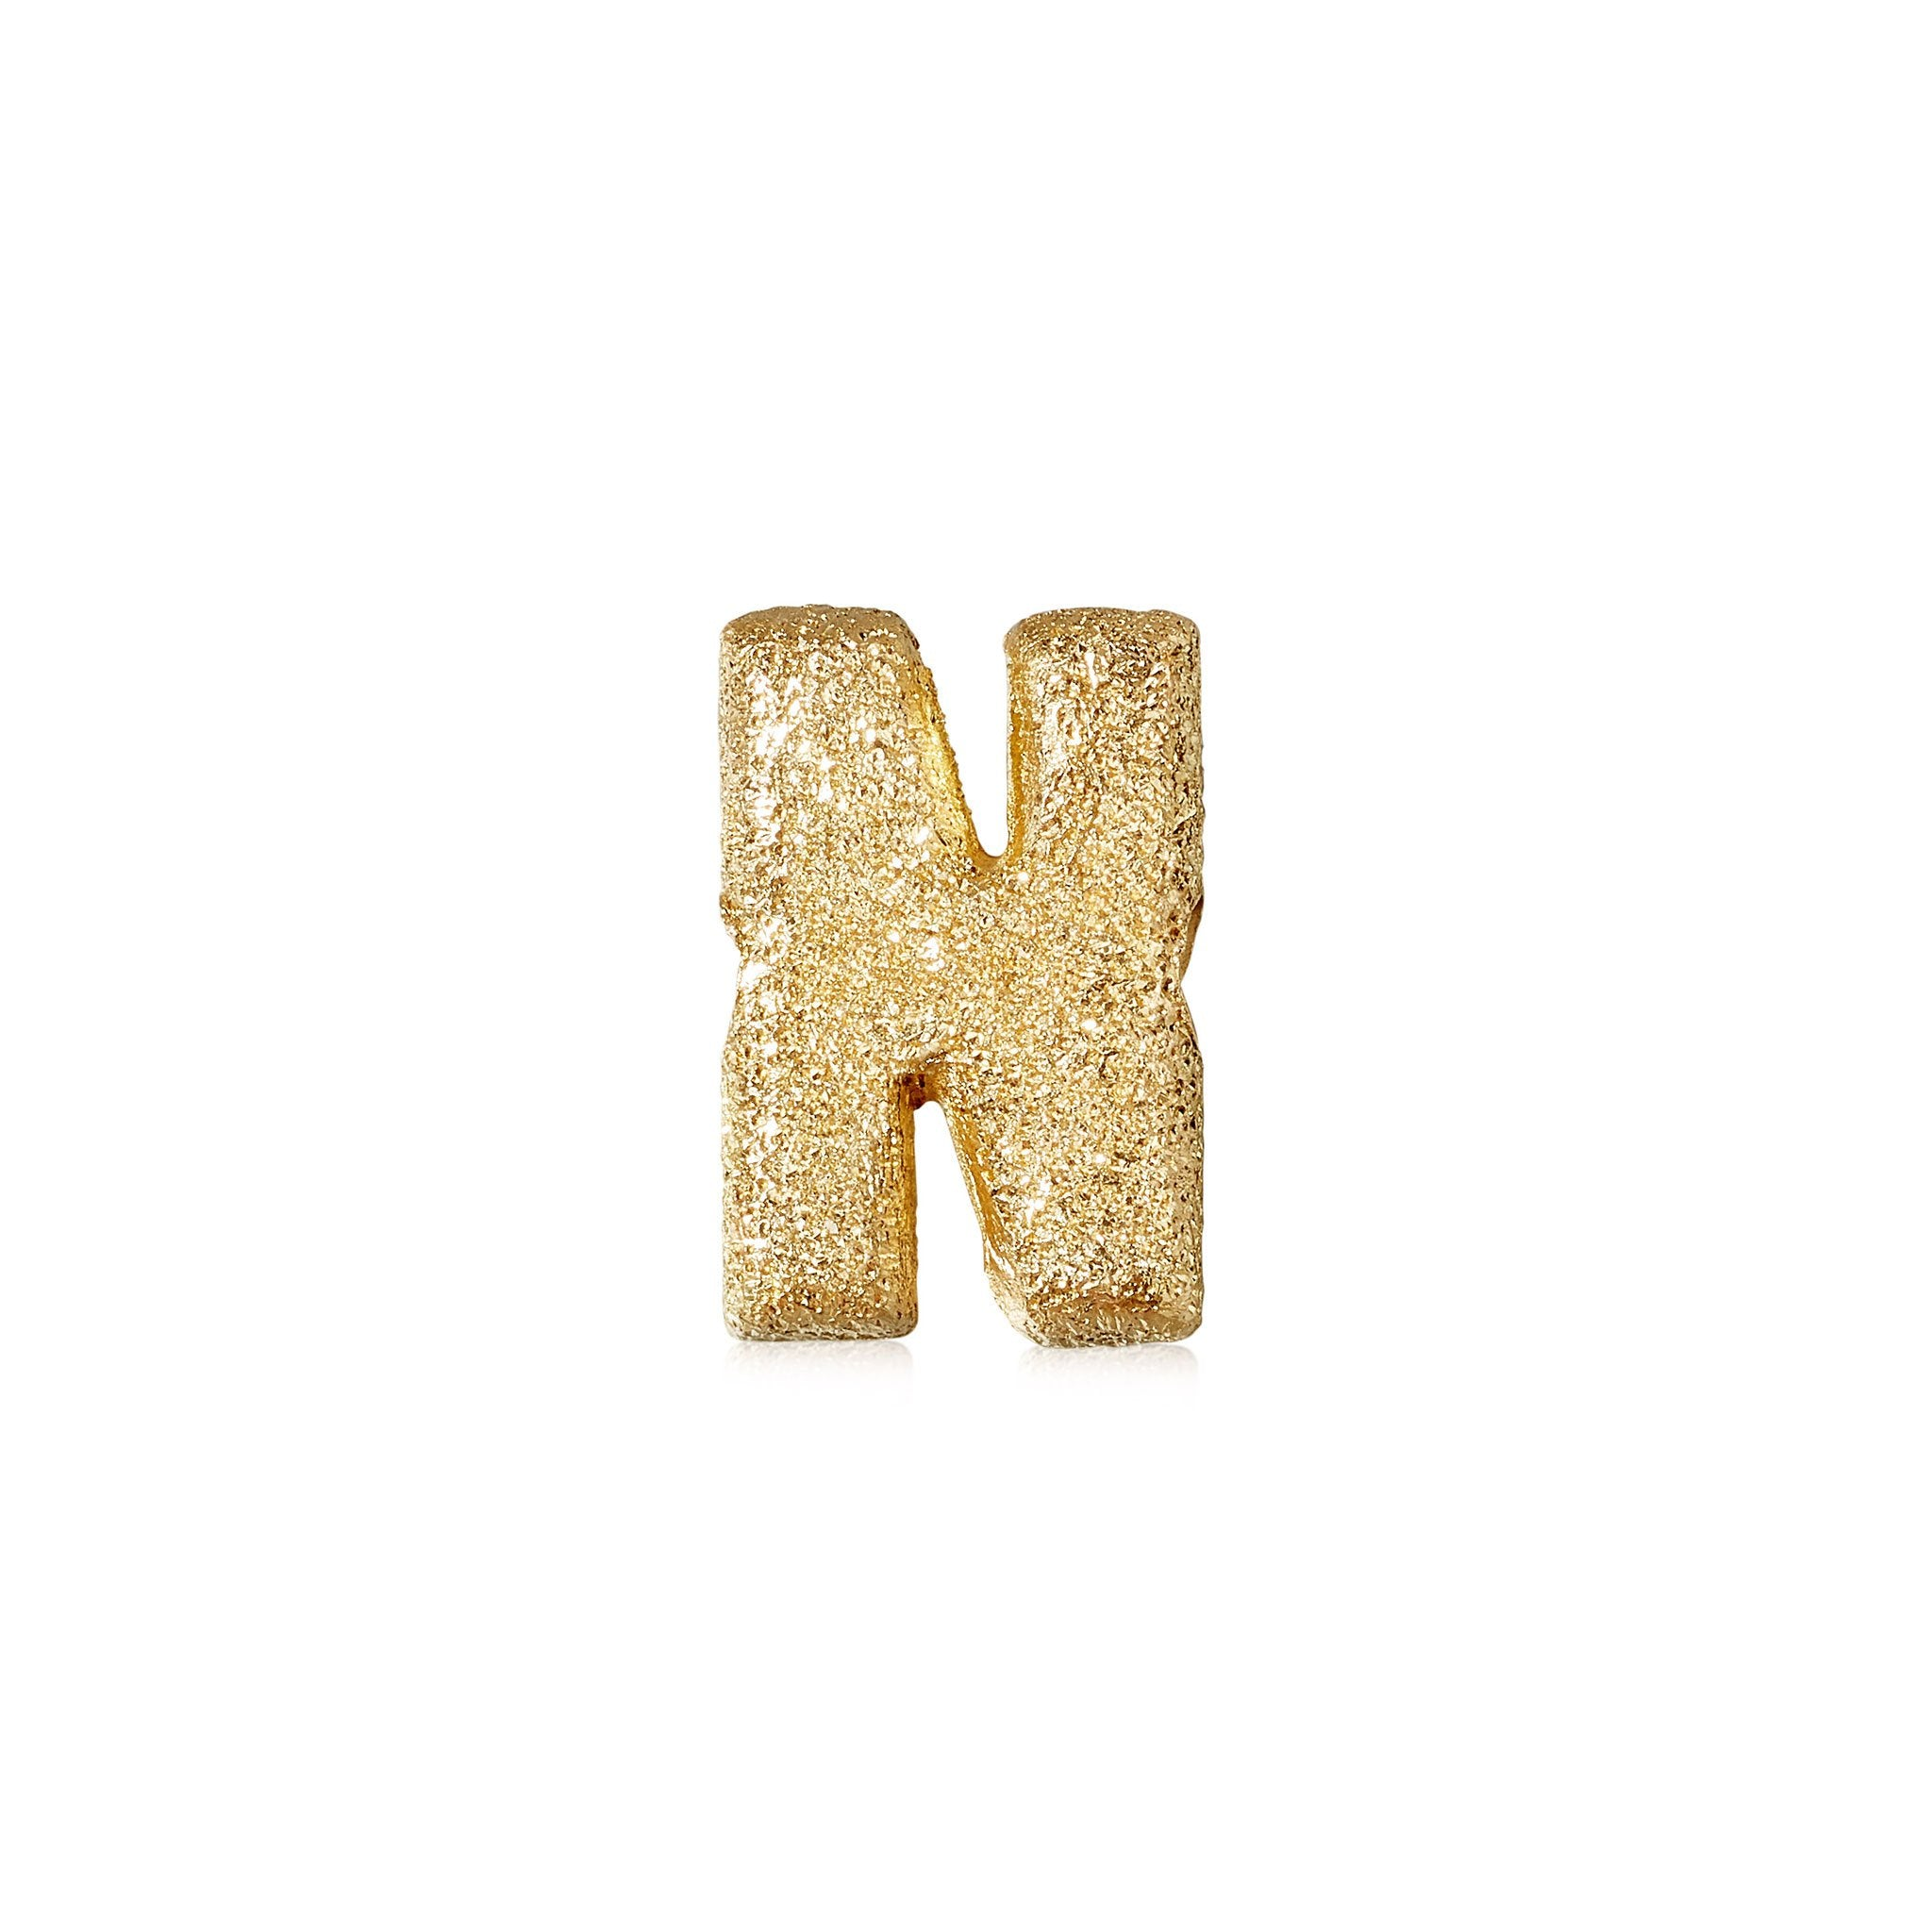 FORTE Florentine Finish Letter N - 18k Yellow Gold